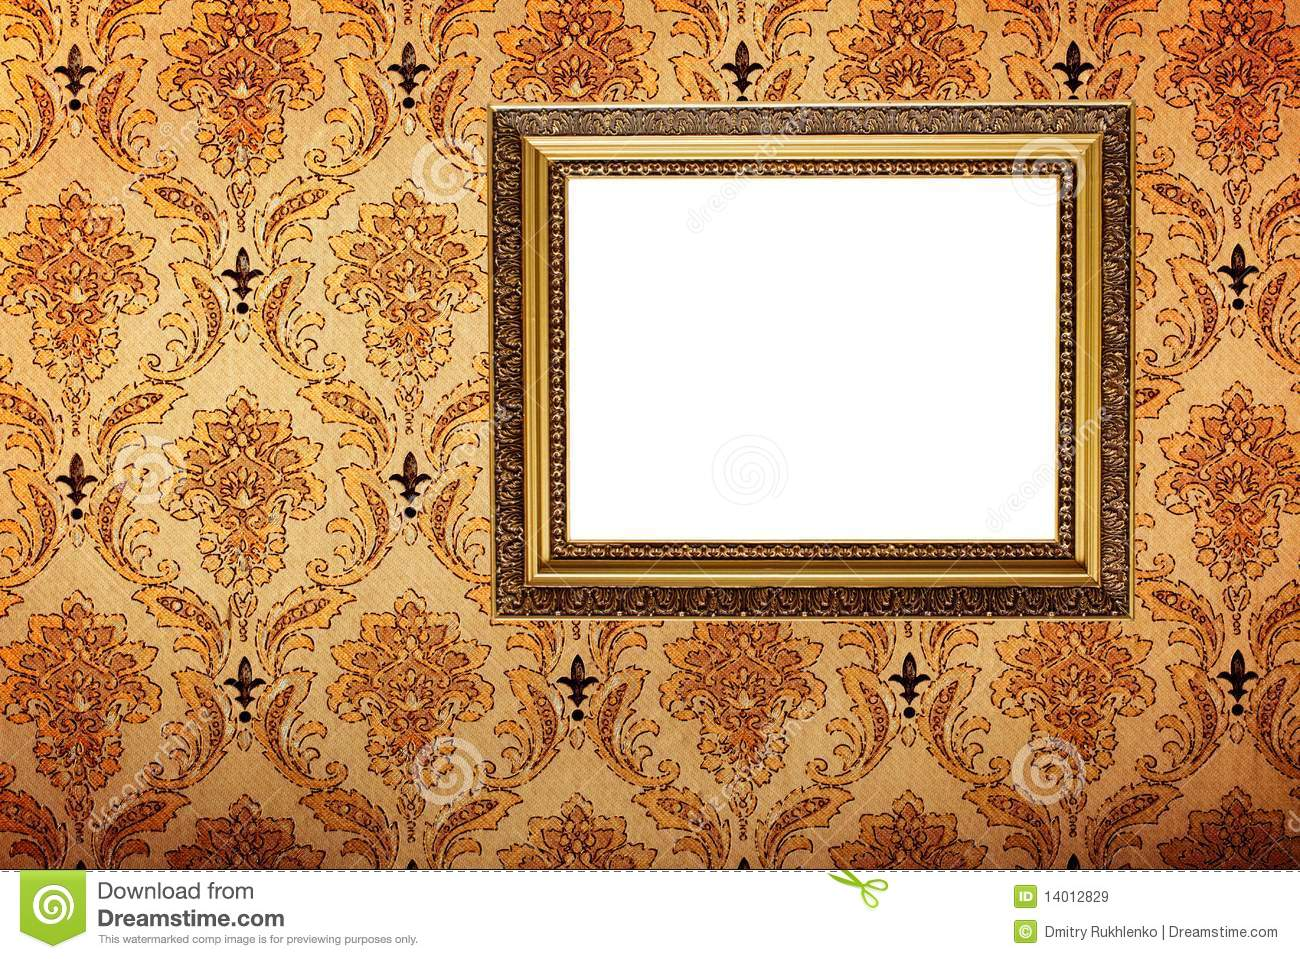 6aafcebd329 Vintage Gold Plated Picture Frame On Wall Stock Image - Image of ...